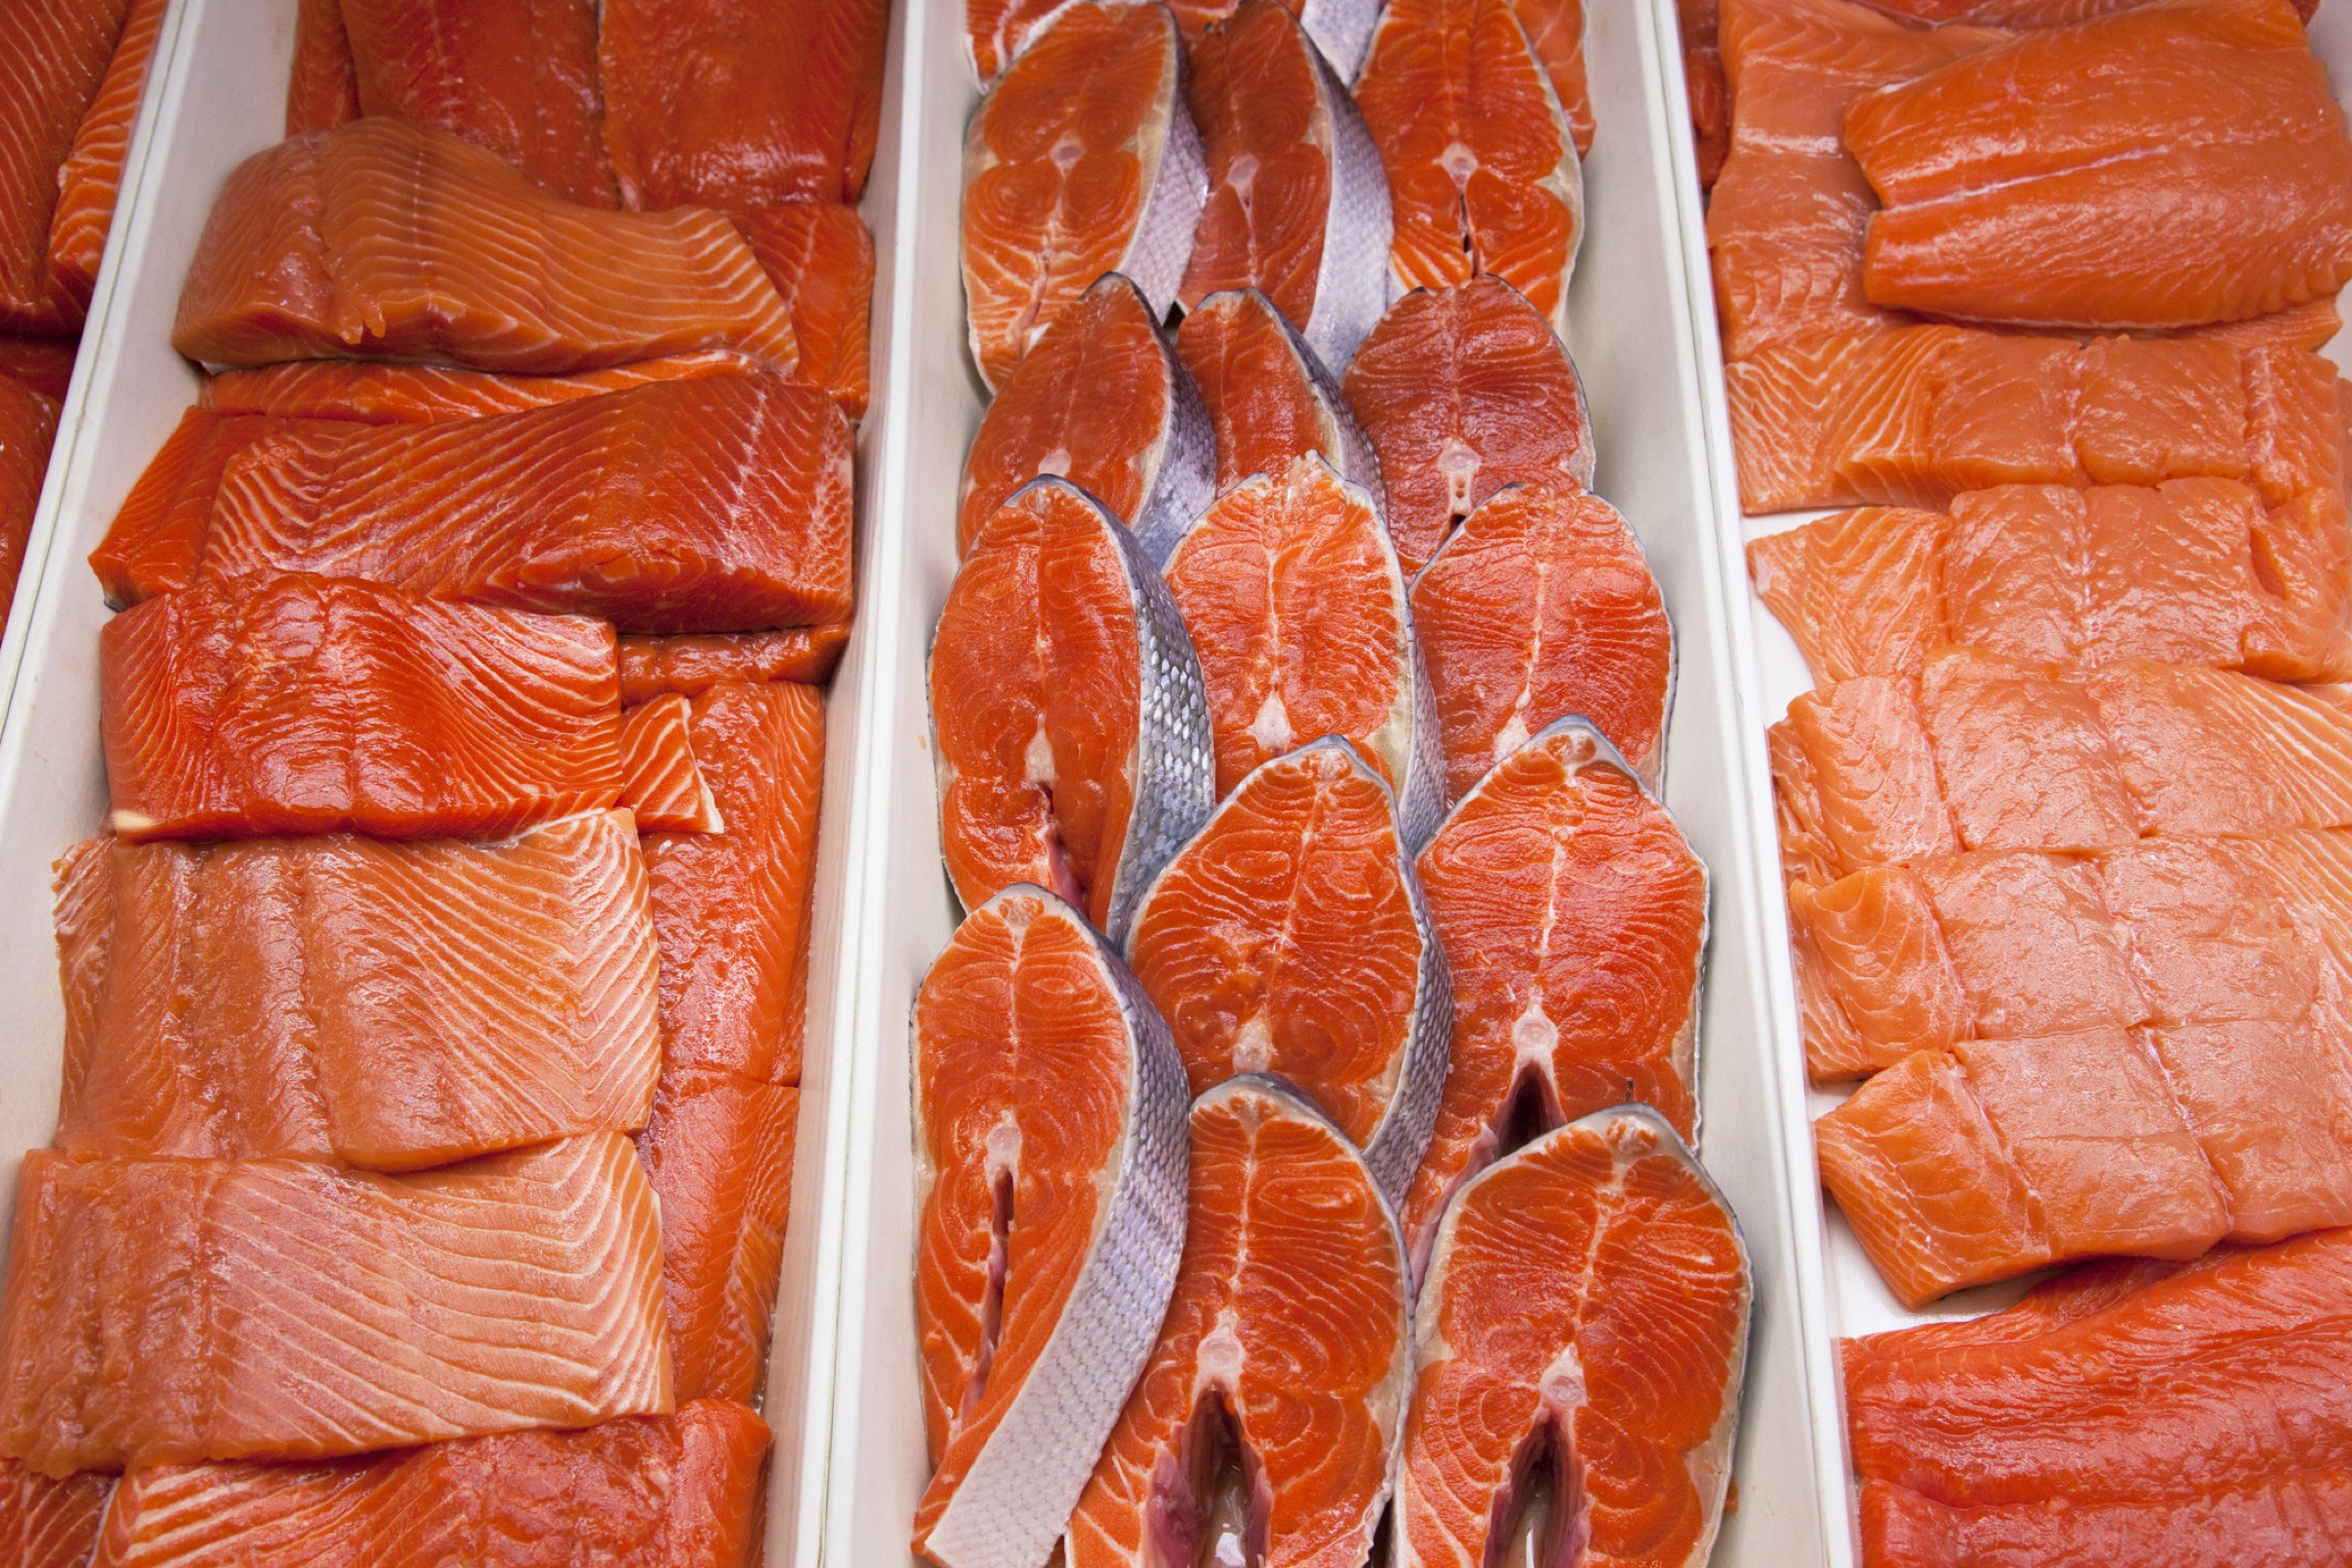 Wild salmon for sale in a grocery store—Photograph by Lucidio Studio Inc./Getty